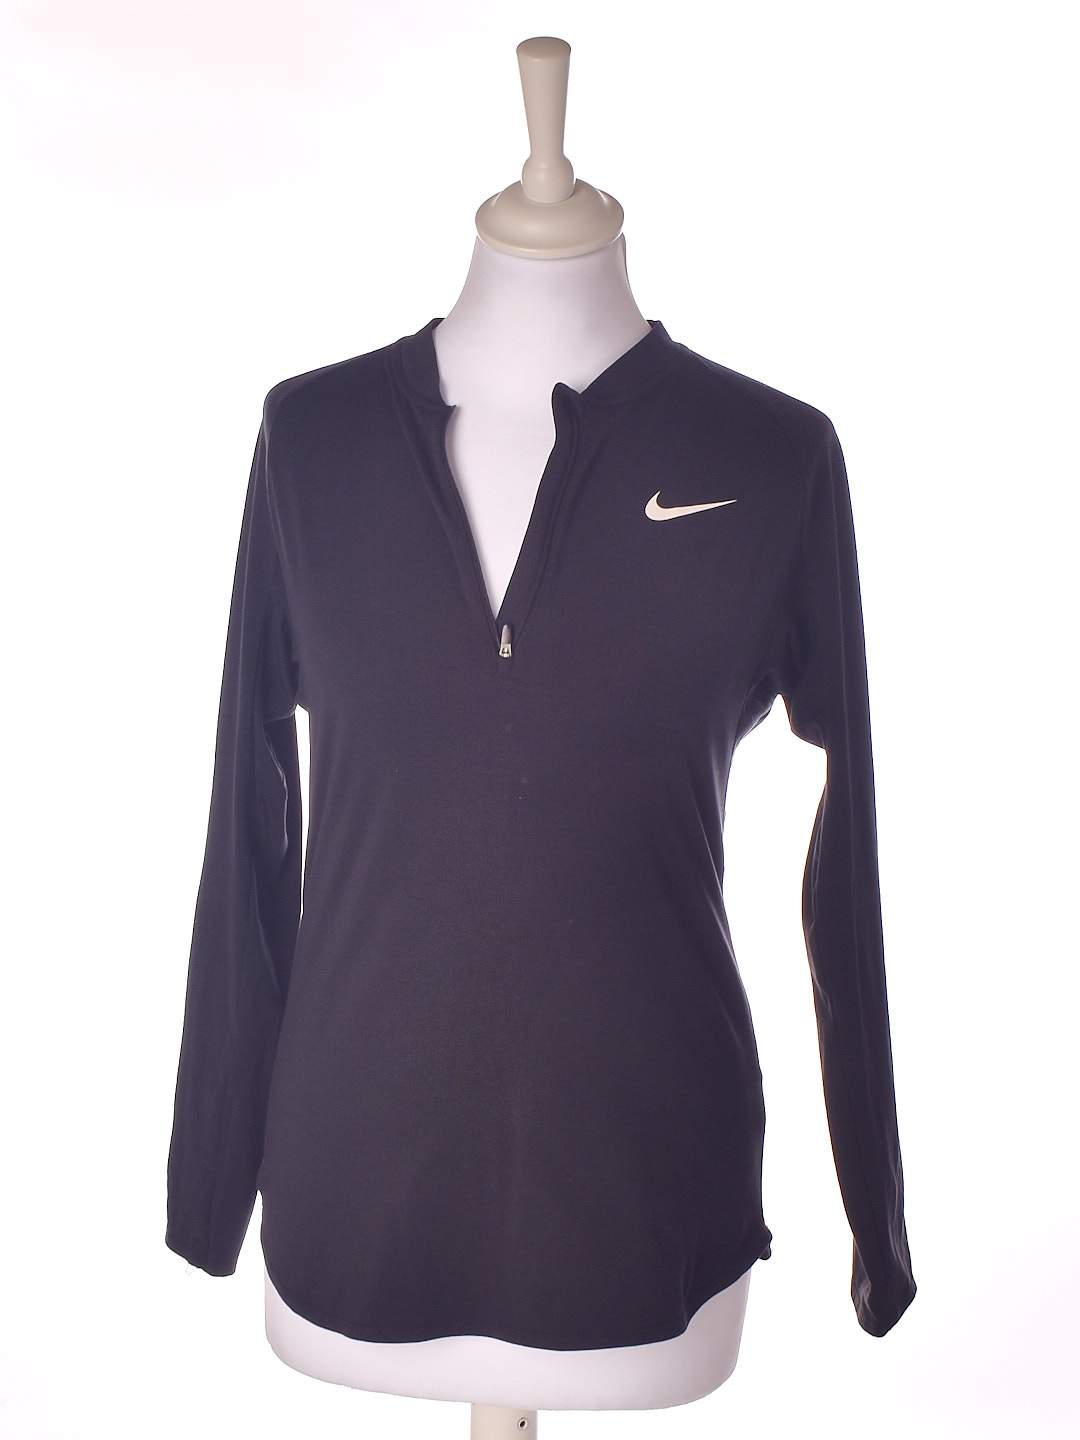 Nike Dri-fit bluse i sort